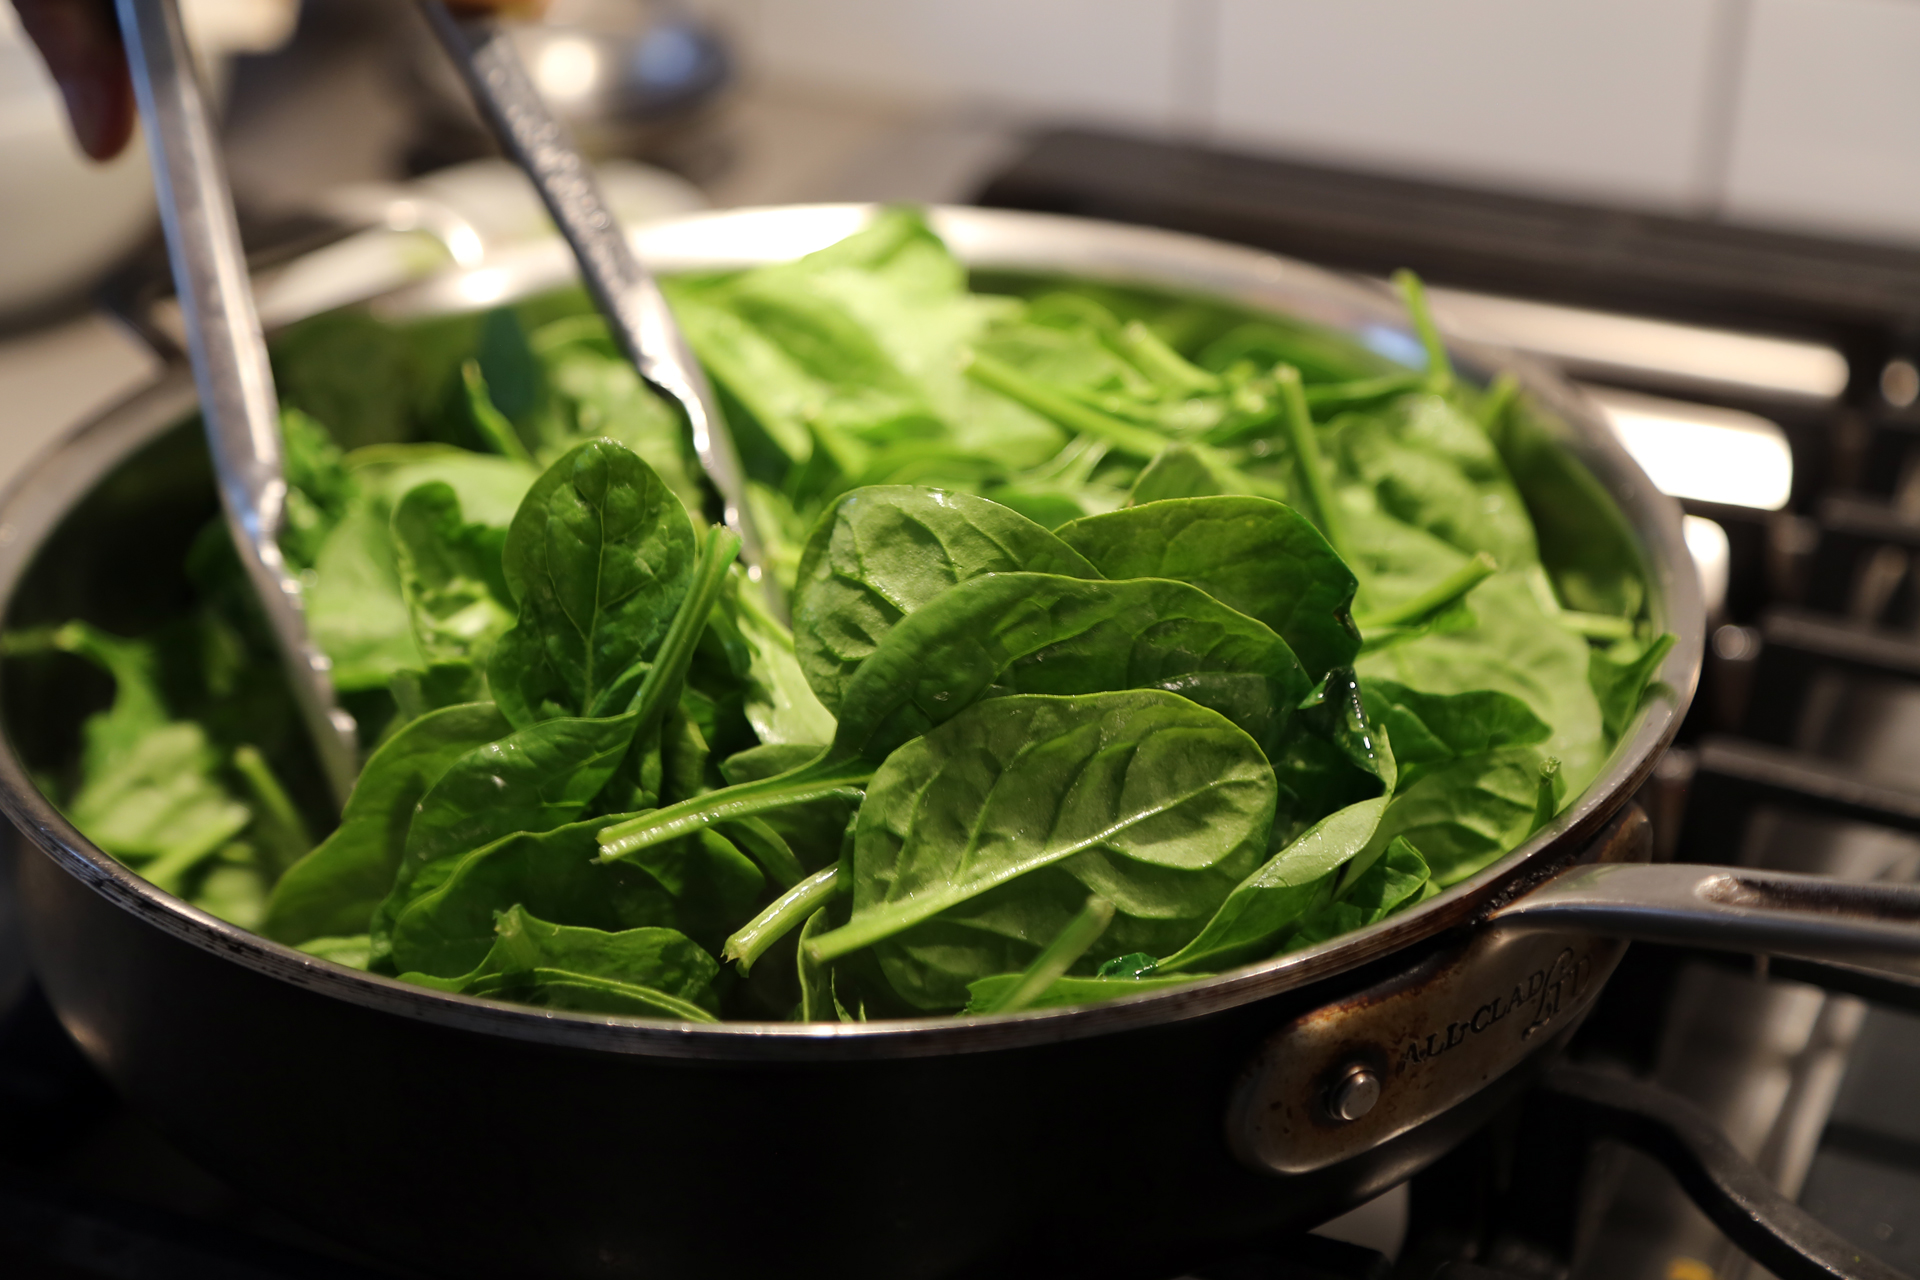 In a large frying pan or sauté pan over medium heat, melt 1/2 tablespoon of the butter. Add the spinach and cook, stirring often, just until barely wilted.